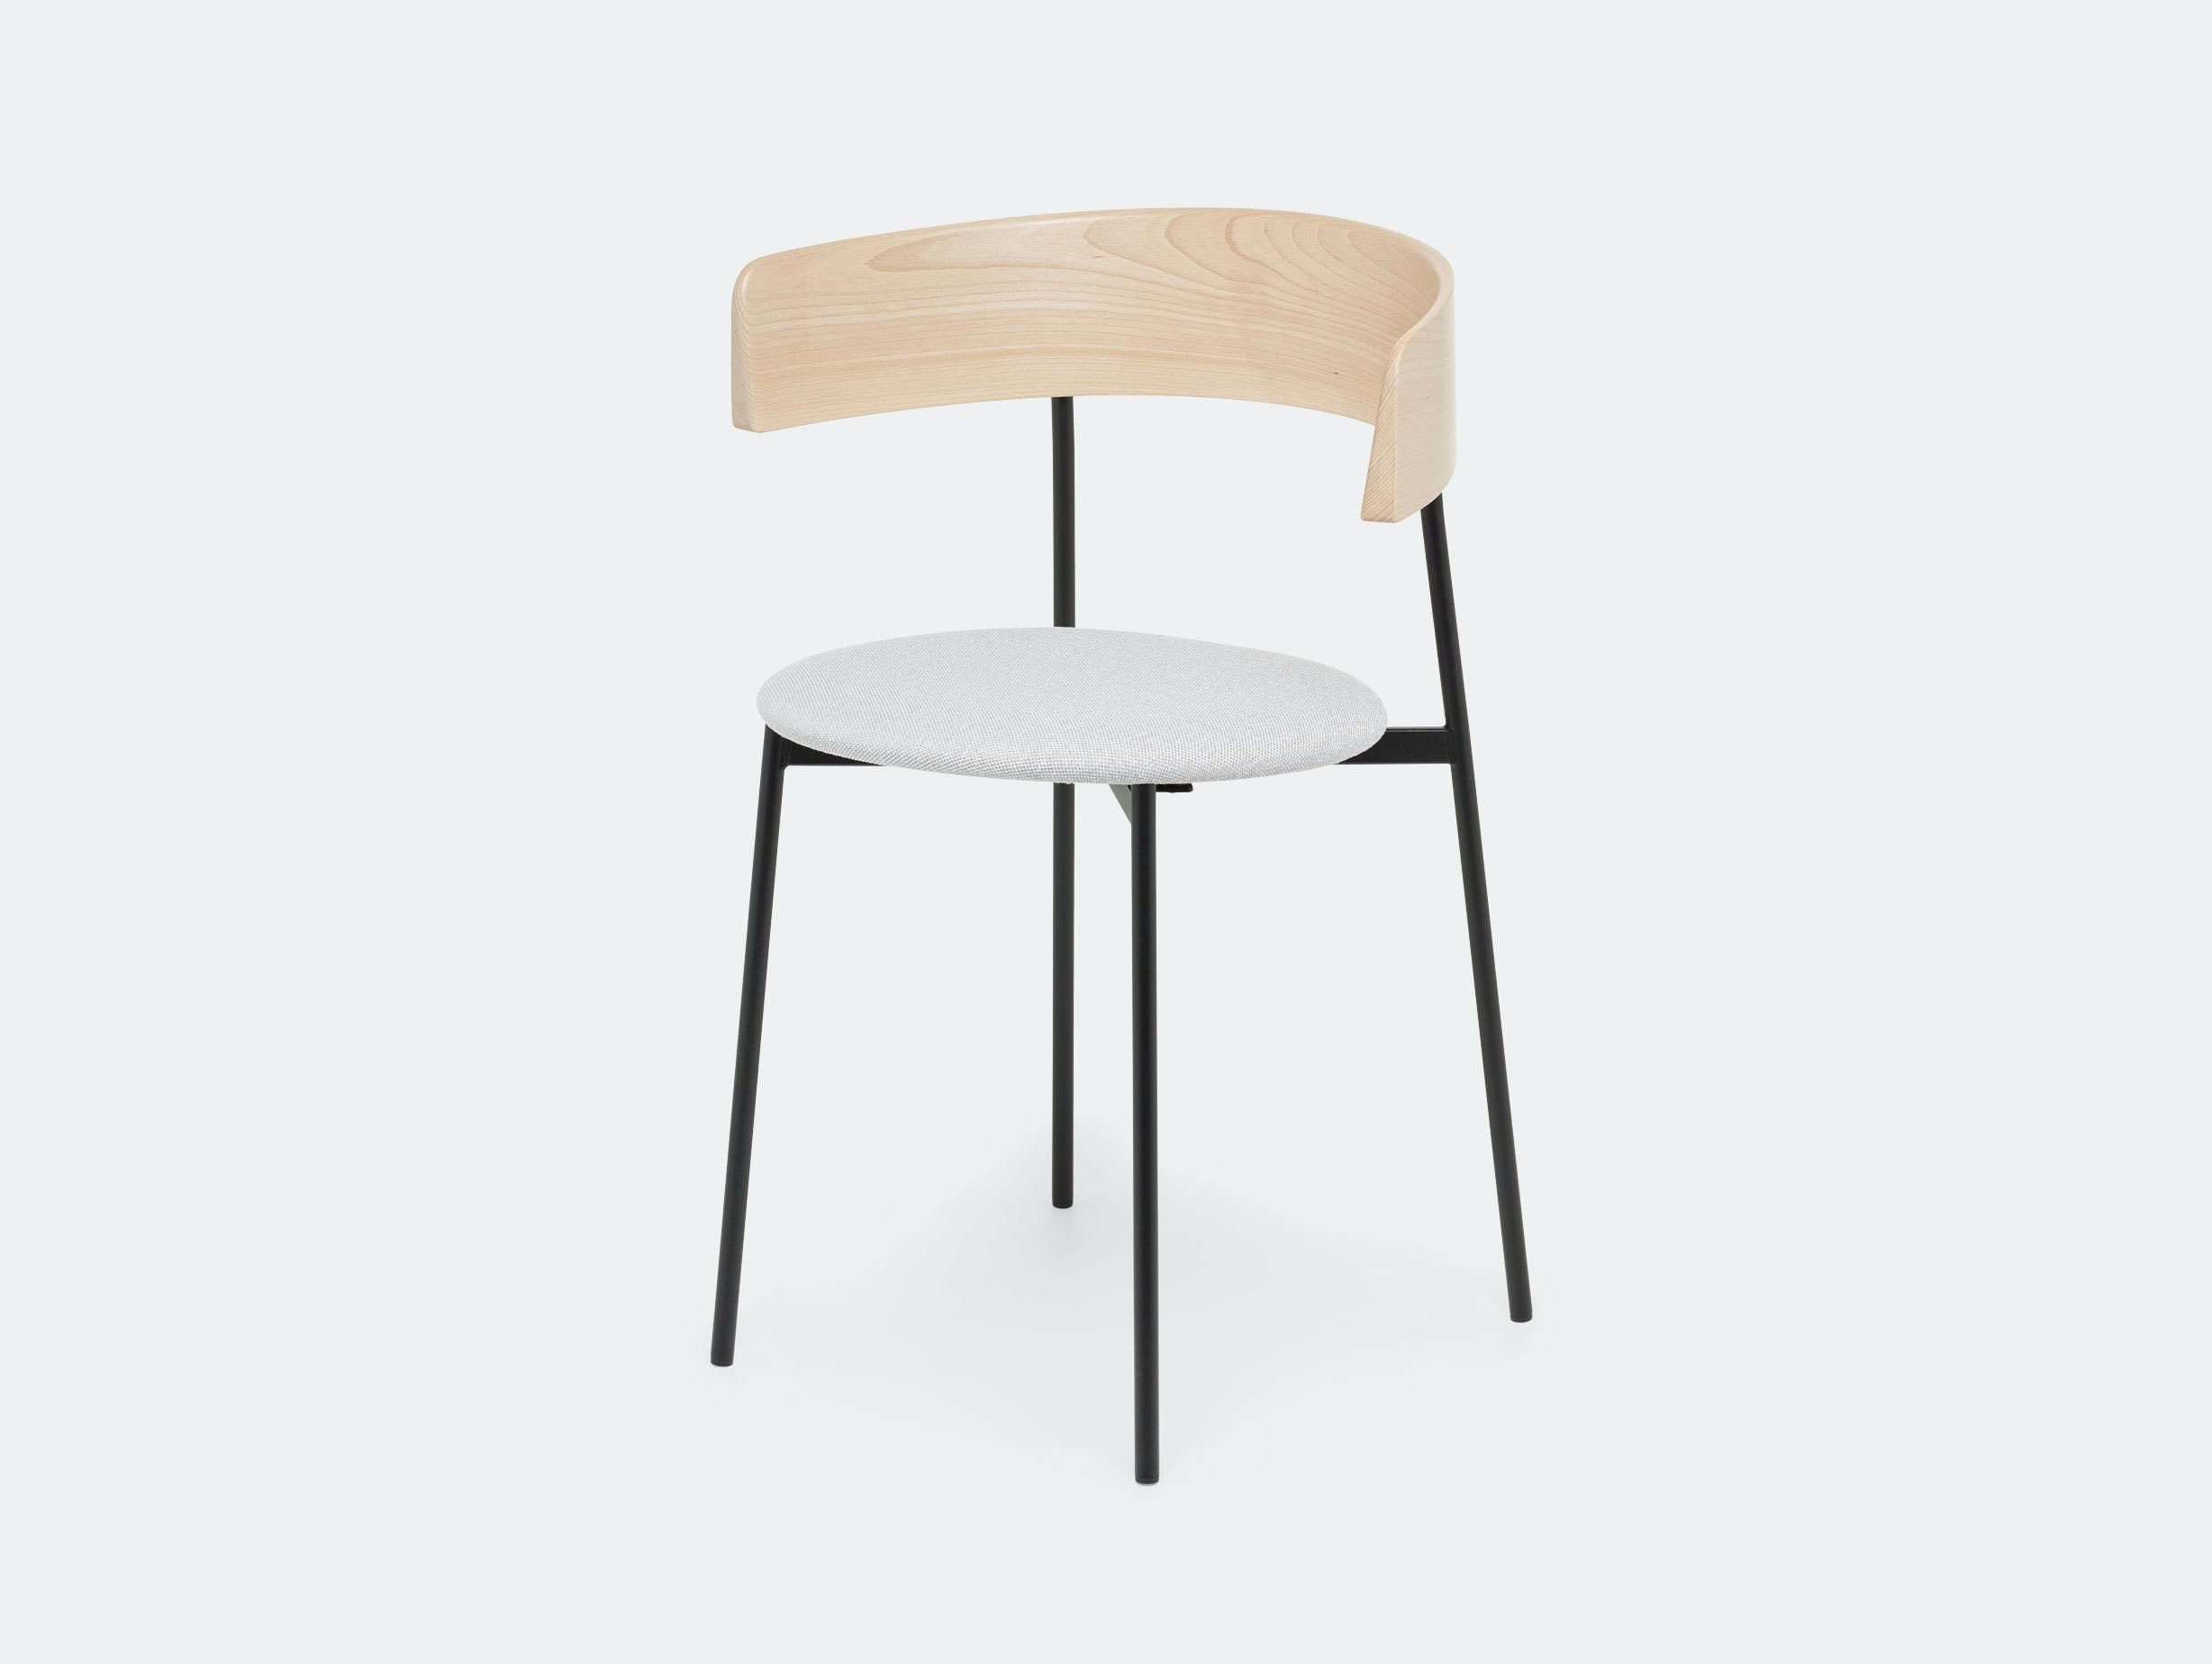 Friday Dining Chair image